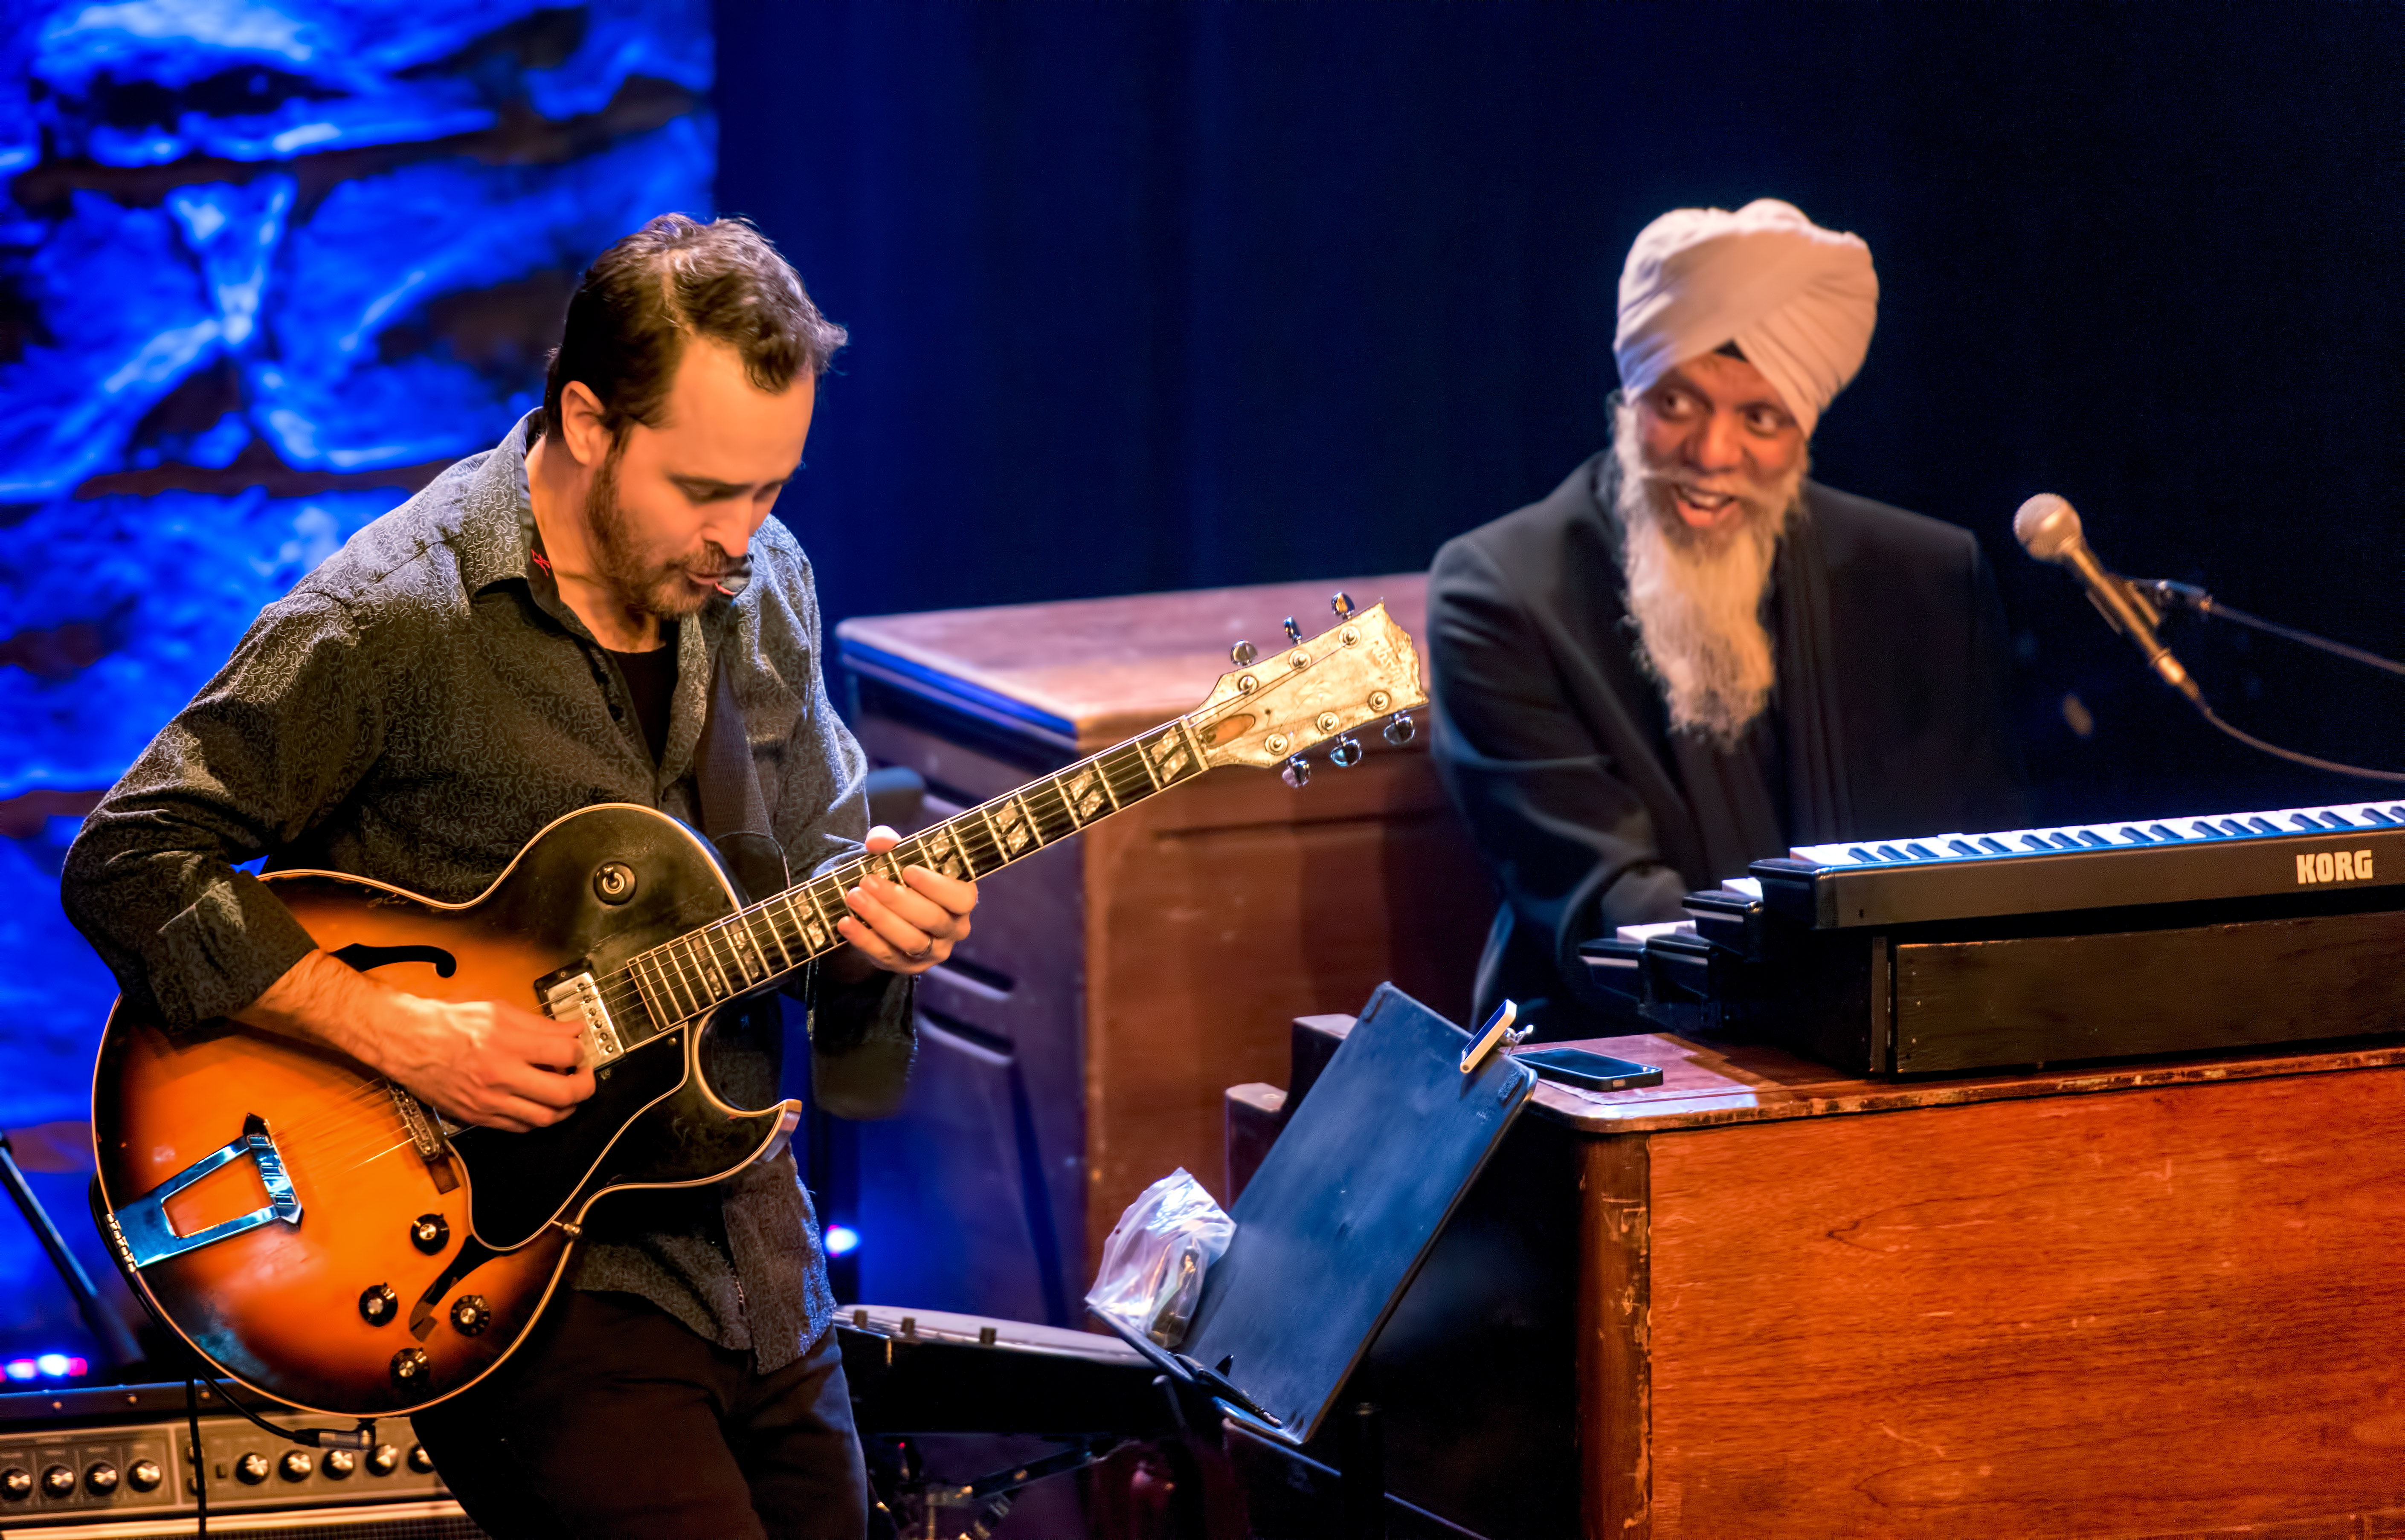 Jonathan Kreisberg And Dr. Lonnie Smith With Evolution At The Montreal International Jazz Festival 2018